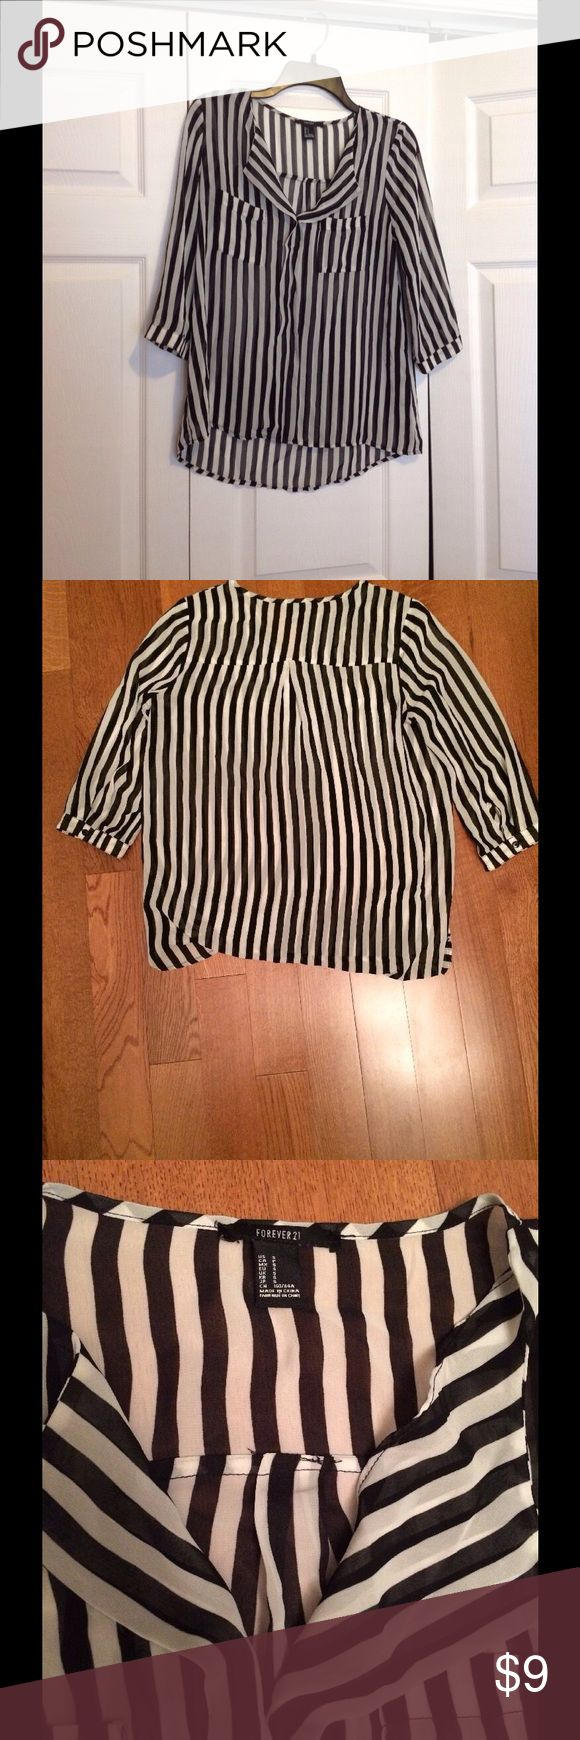 Forever 21 Black and White Striped Blouse Flawless black and white striped. Worn once. Like new. Forever 21 Tops Blouses